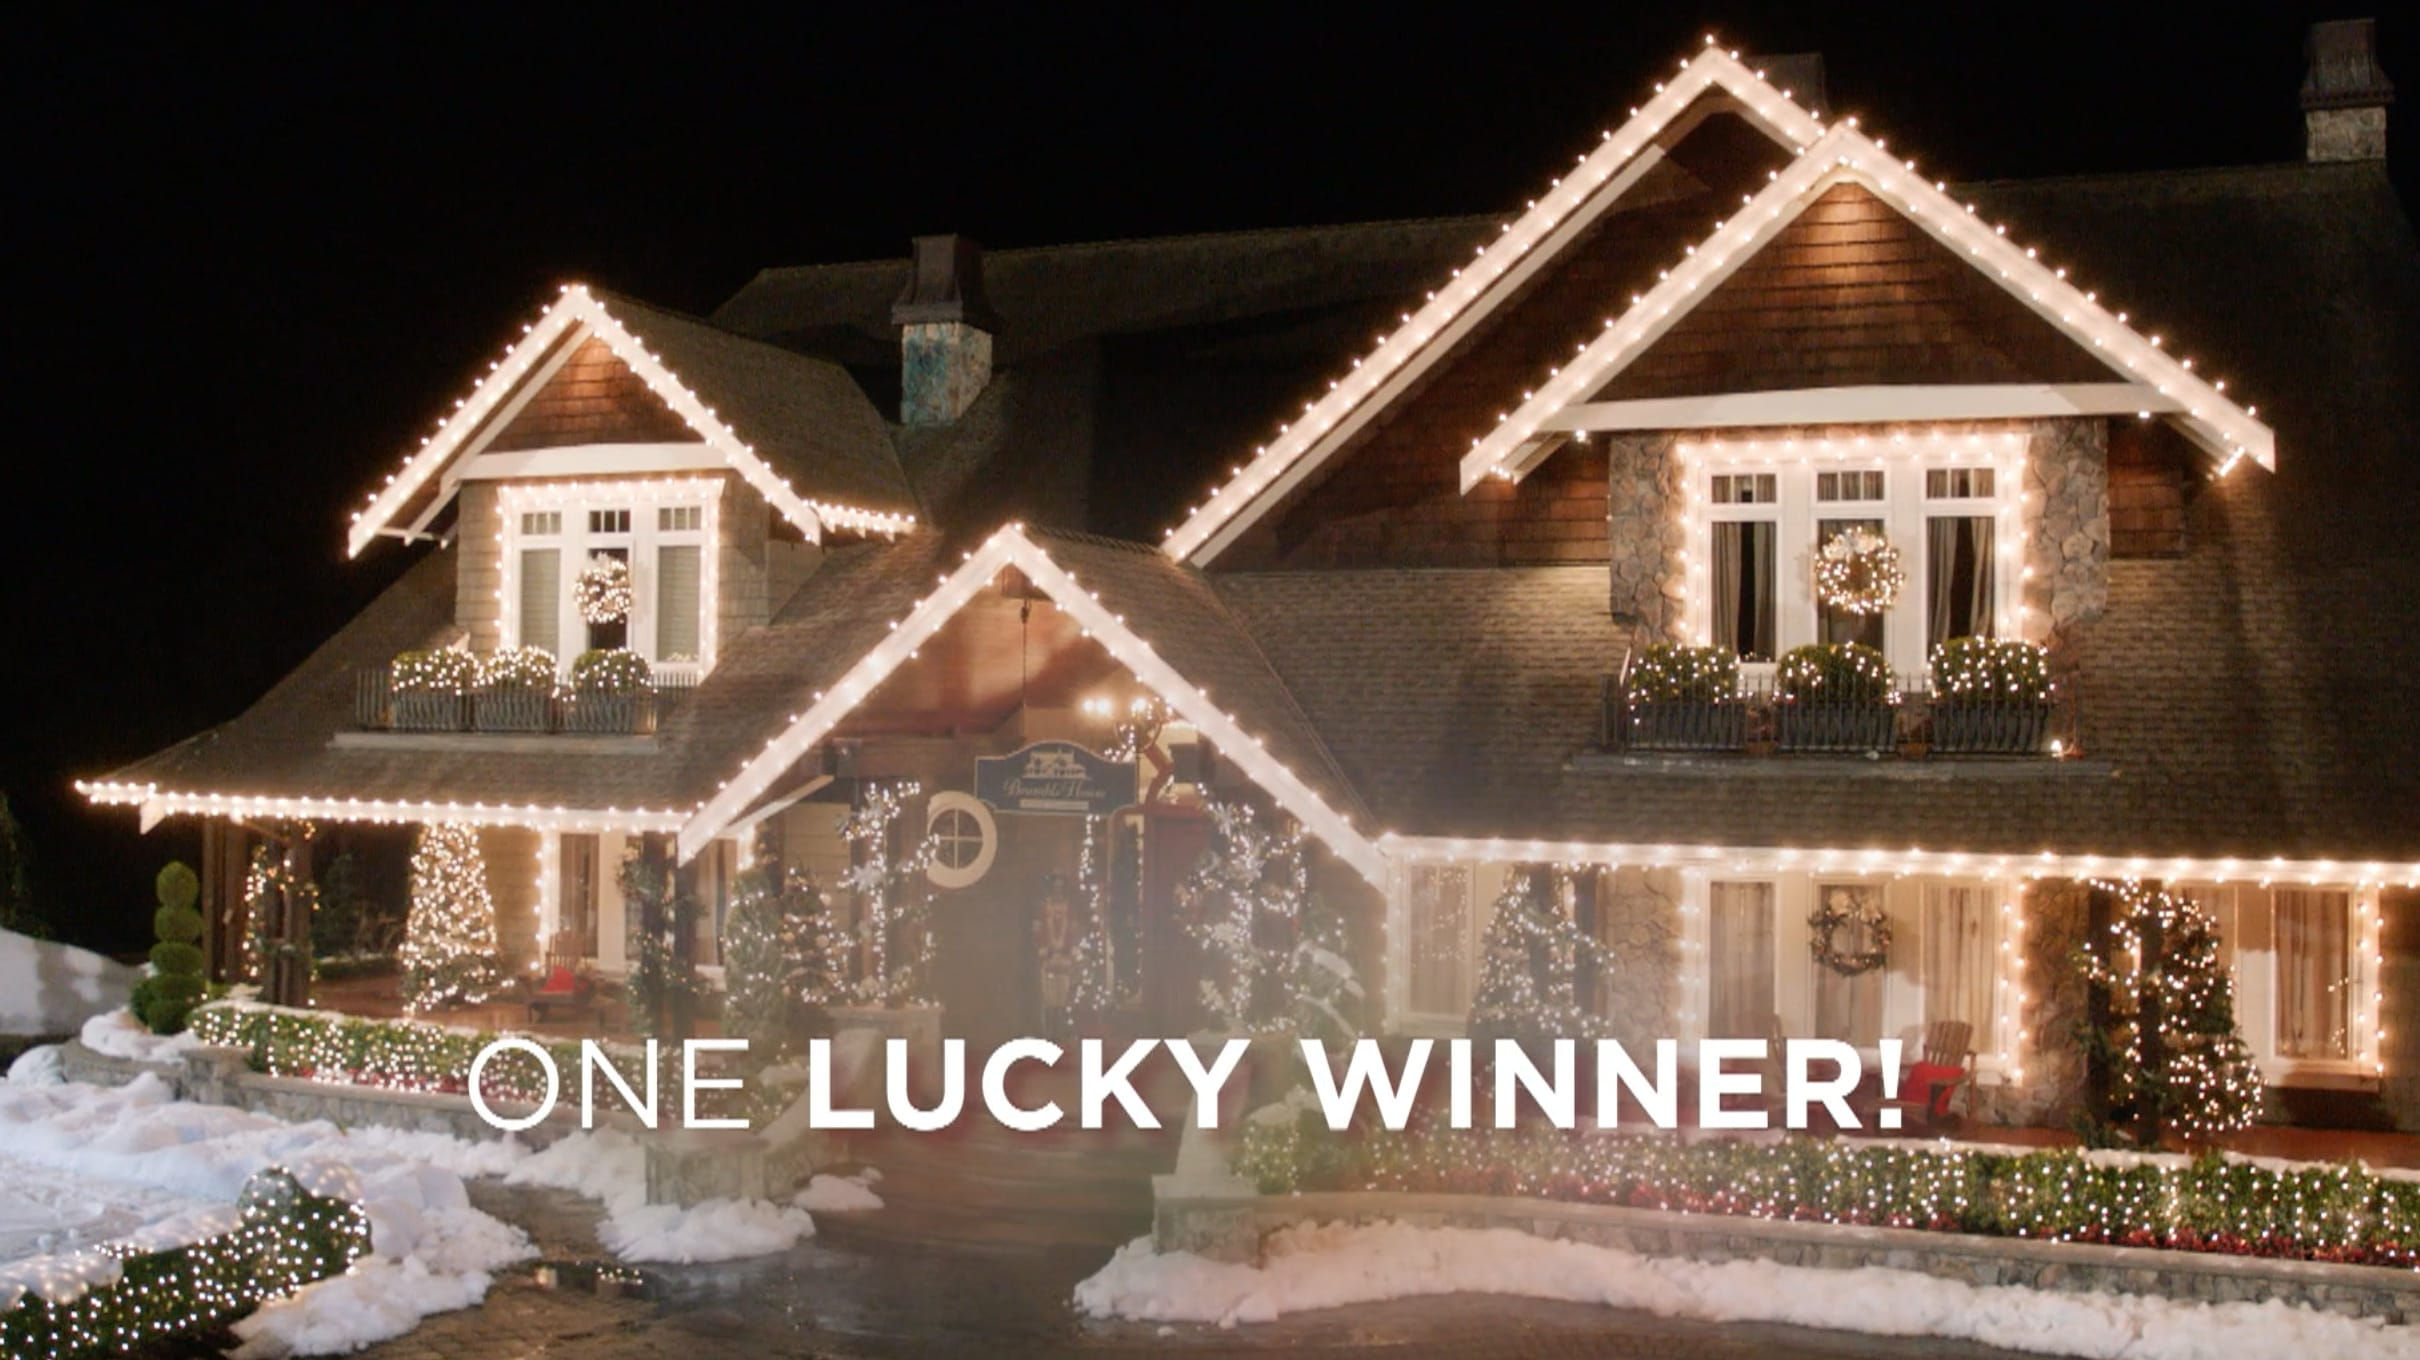 hallmark channels holiday home decoration sweepstakes runs through sept 21 - Hallmark Christmas Decorations